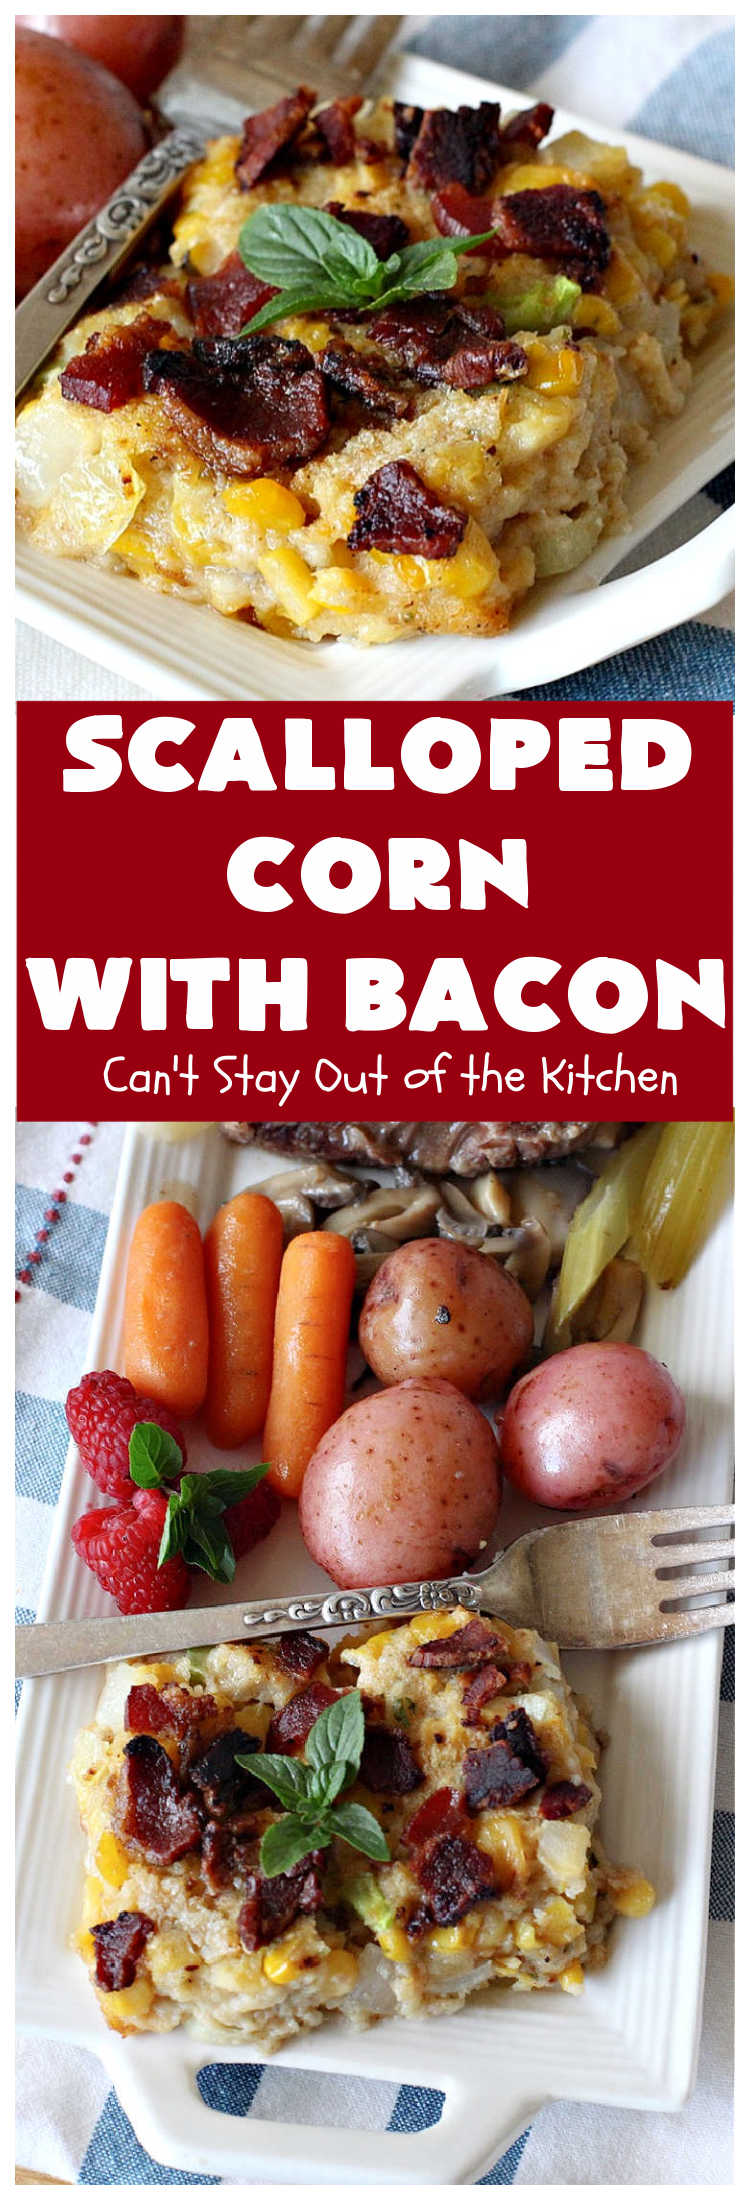 Scalloped Corn with Bacon | Can't Stay Out of the Kitchen | this fantastic #GooseberryPatch #recipe is absolutely mouthwatering & delicious. Yes, #bacon makes everything better! It's perfect for your #holiday or company dinners since it's really easy to assemble & it always rates 5 stars when I make it. #corn #ScallopedCornWithBacon #HolidayCasserole #HolidaySideDish #ScallopedCorn